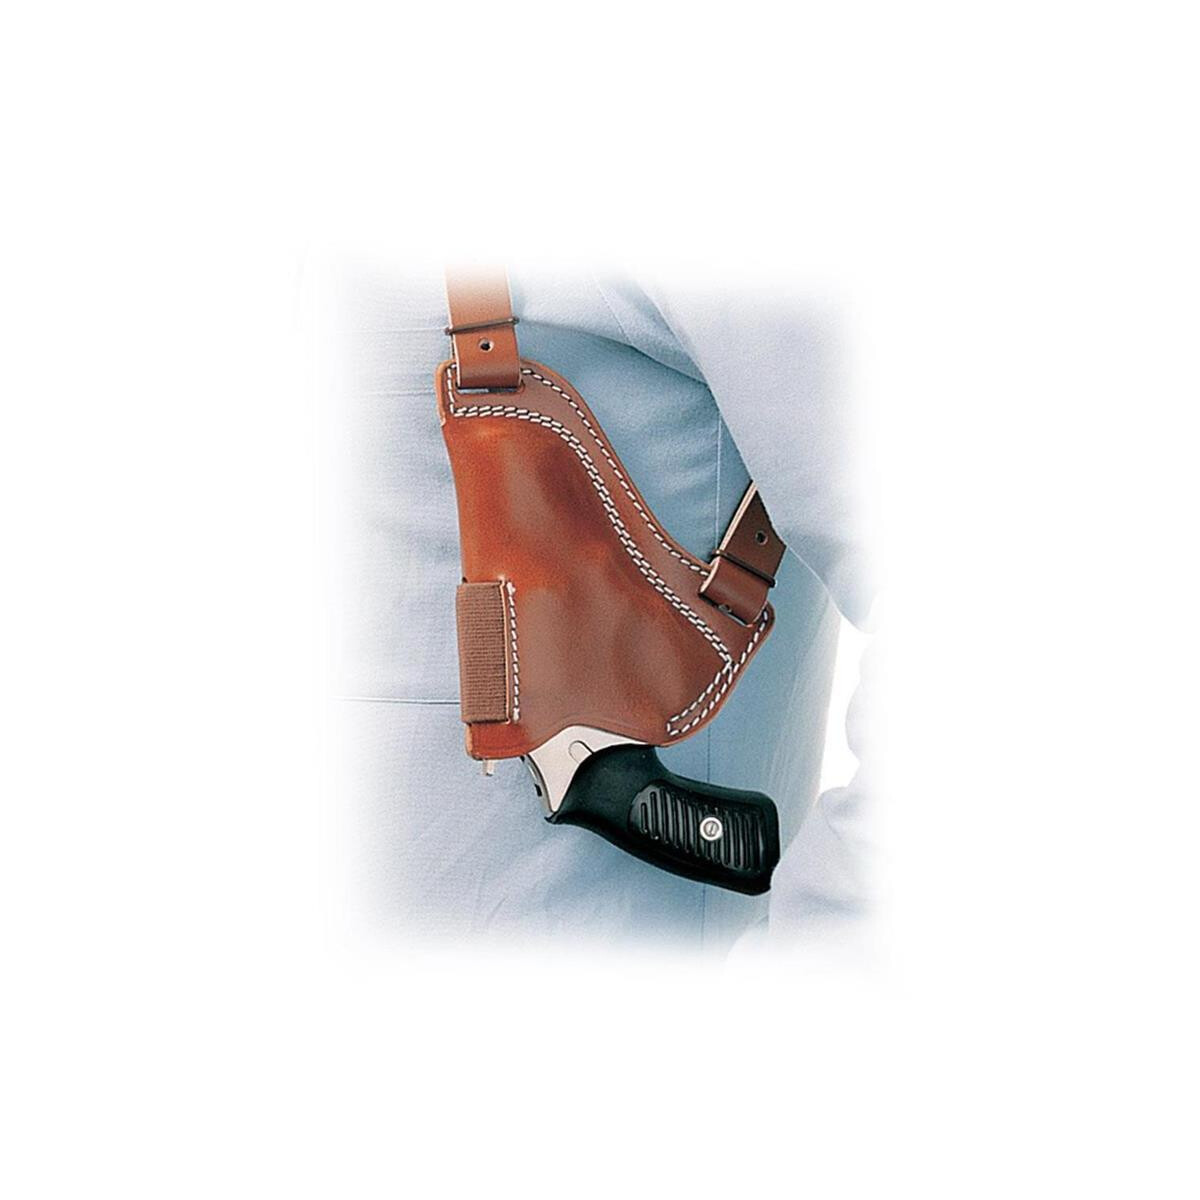 Shoulder holster BODY GUARD right-Handed-brown-S&W 2\